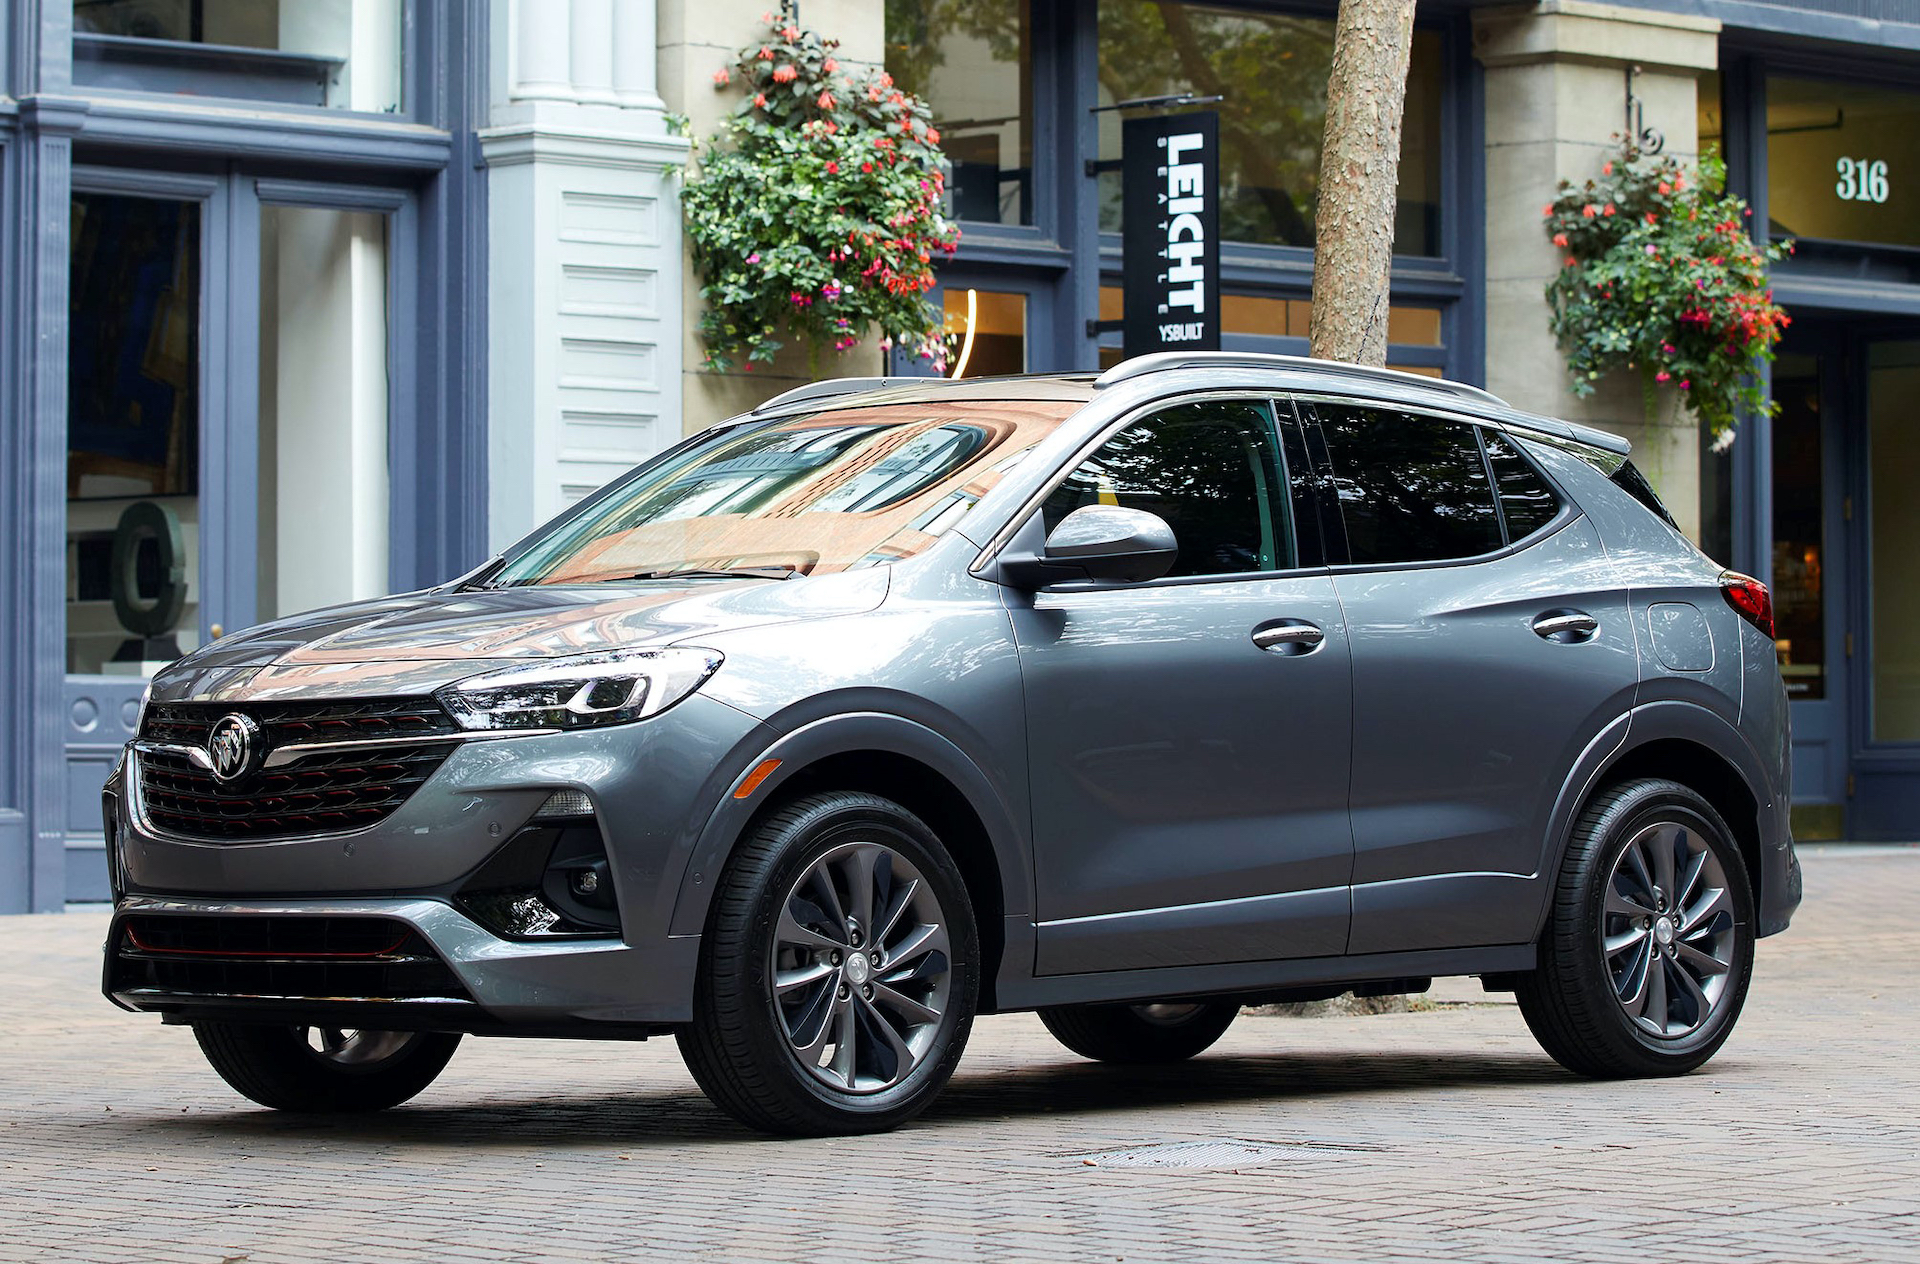 2021 Buick Encore Review, Ratings, Specs, Prices, And Photos New 2021 Buick Encore Configurations, Dimensions, Deals